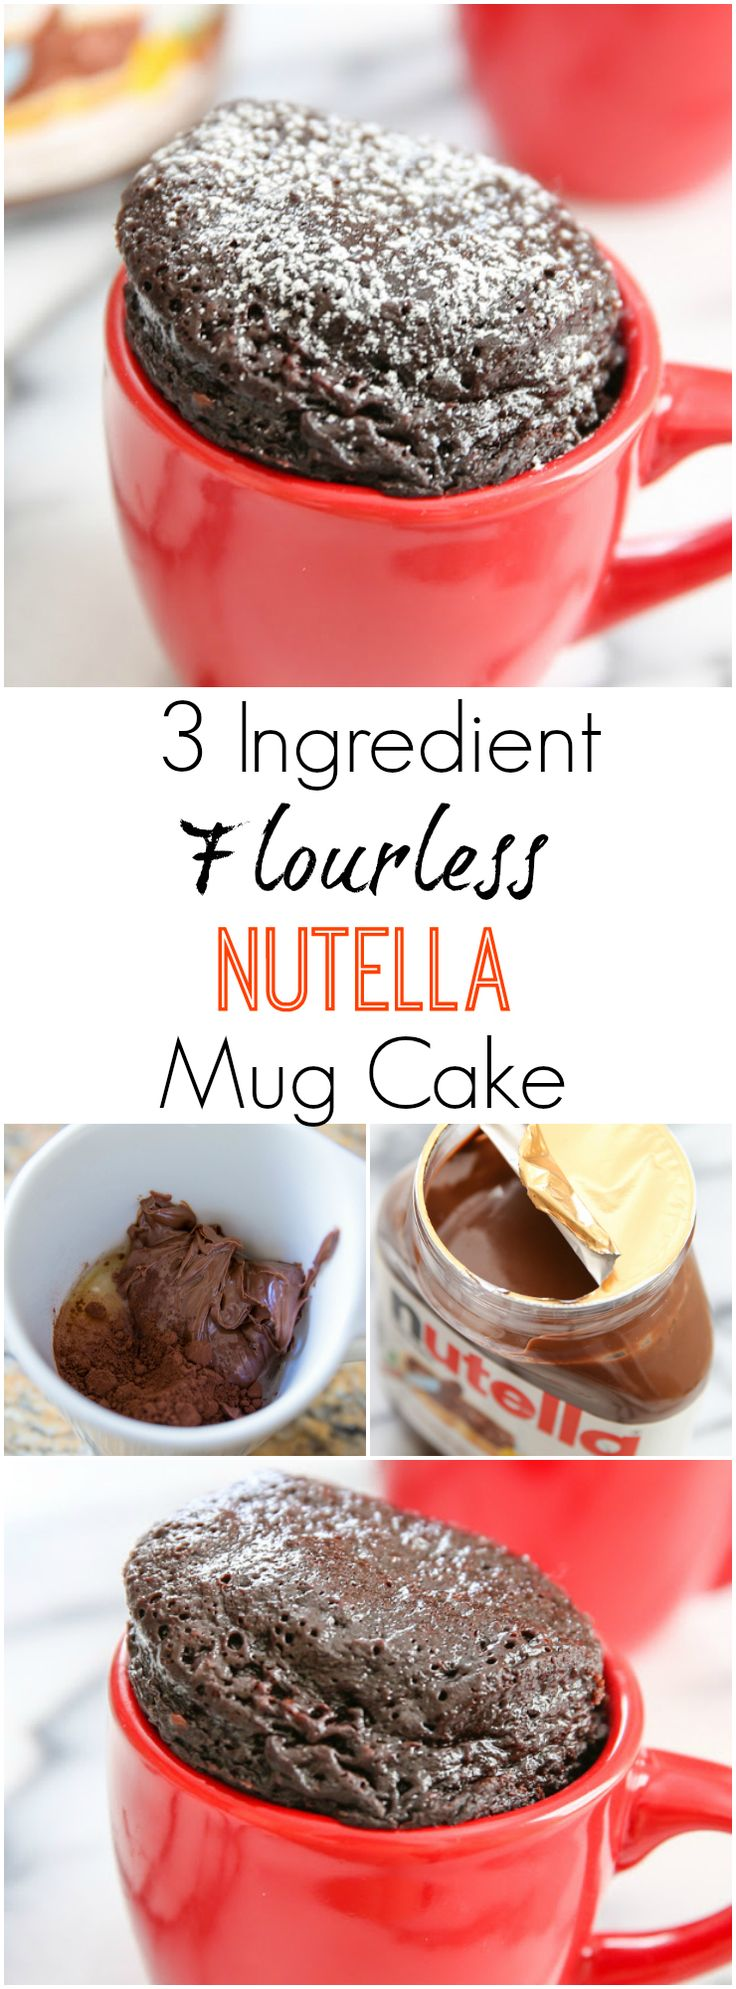 3 Ingredient Flourless Nutella Mug Cake. Super easy, single serving, rich and decadent microwave dessert. #HealthyEggMeals (ok so not so healthy but yummy!)